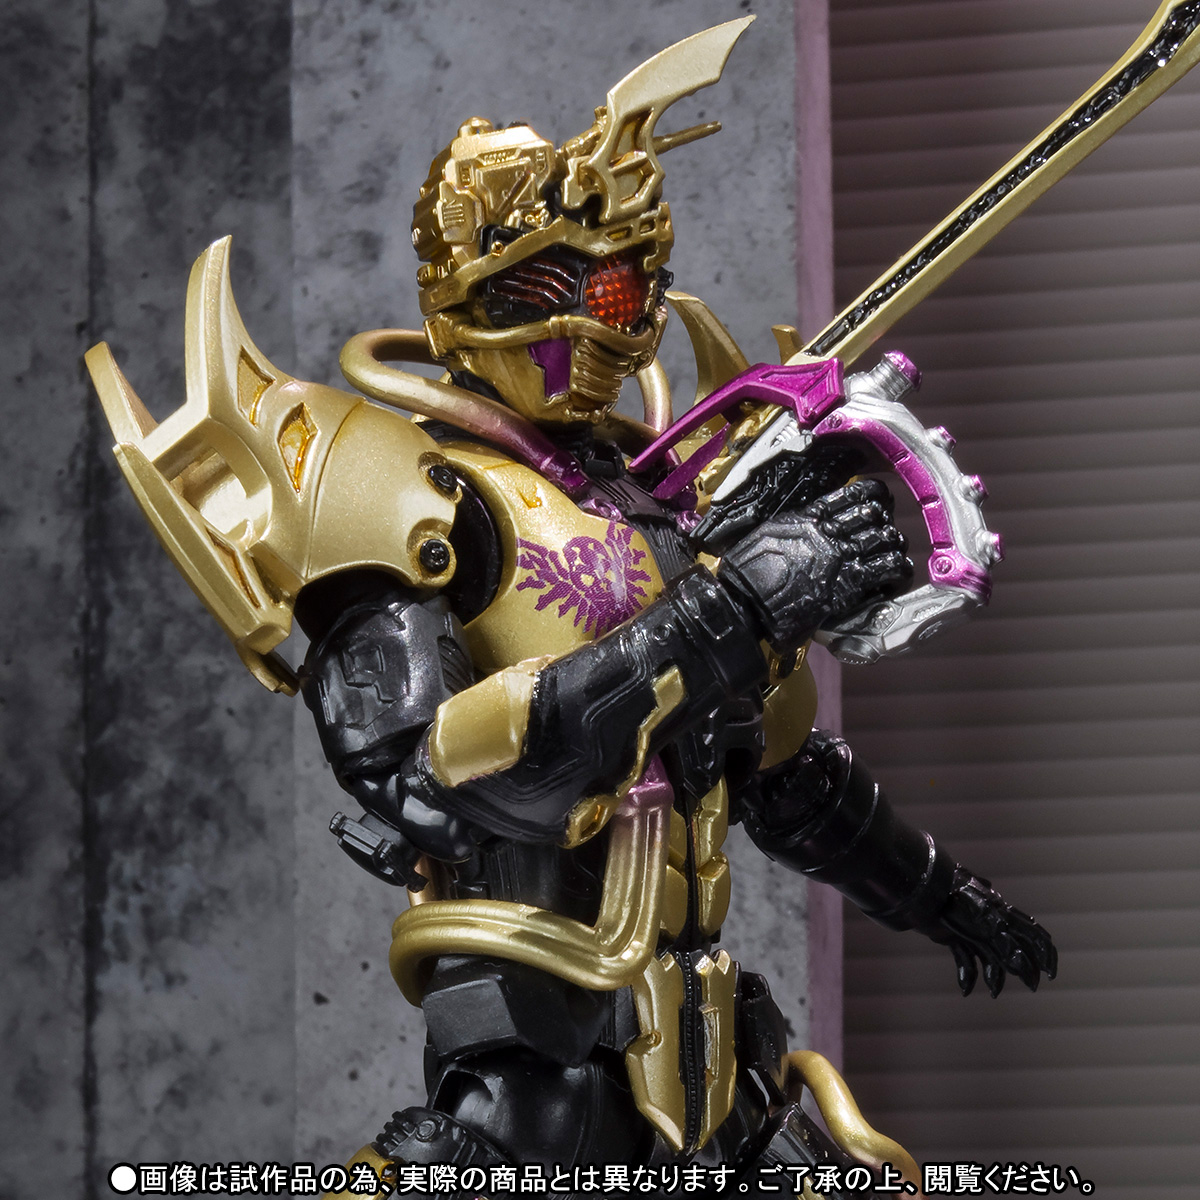 S.H.Figuarts - Chou Mashin Chaser (Limited Pre-order)